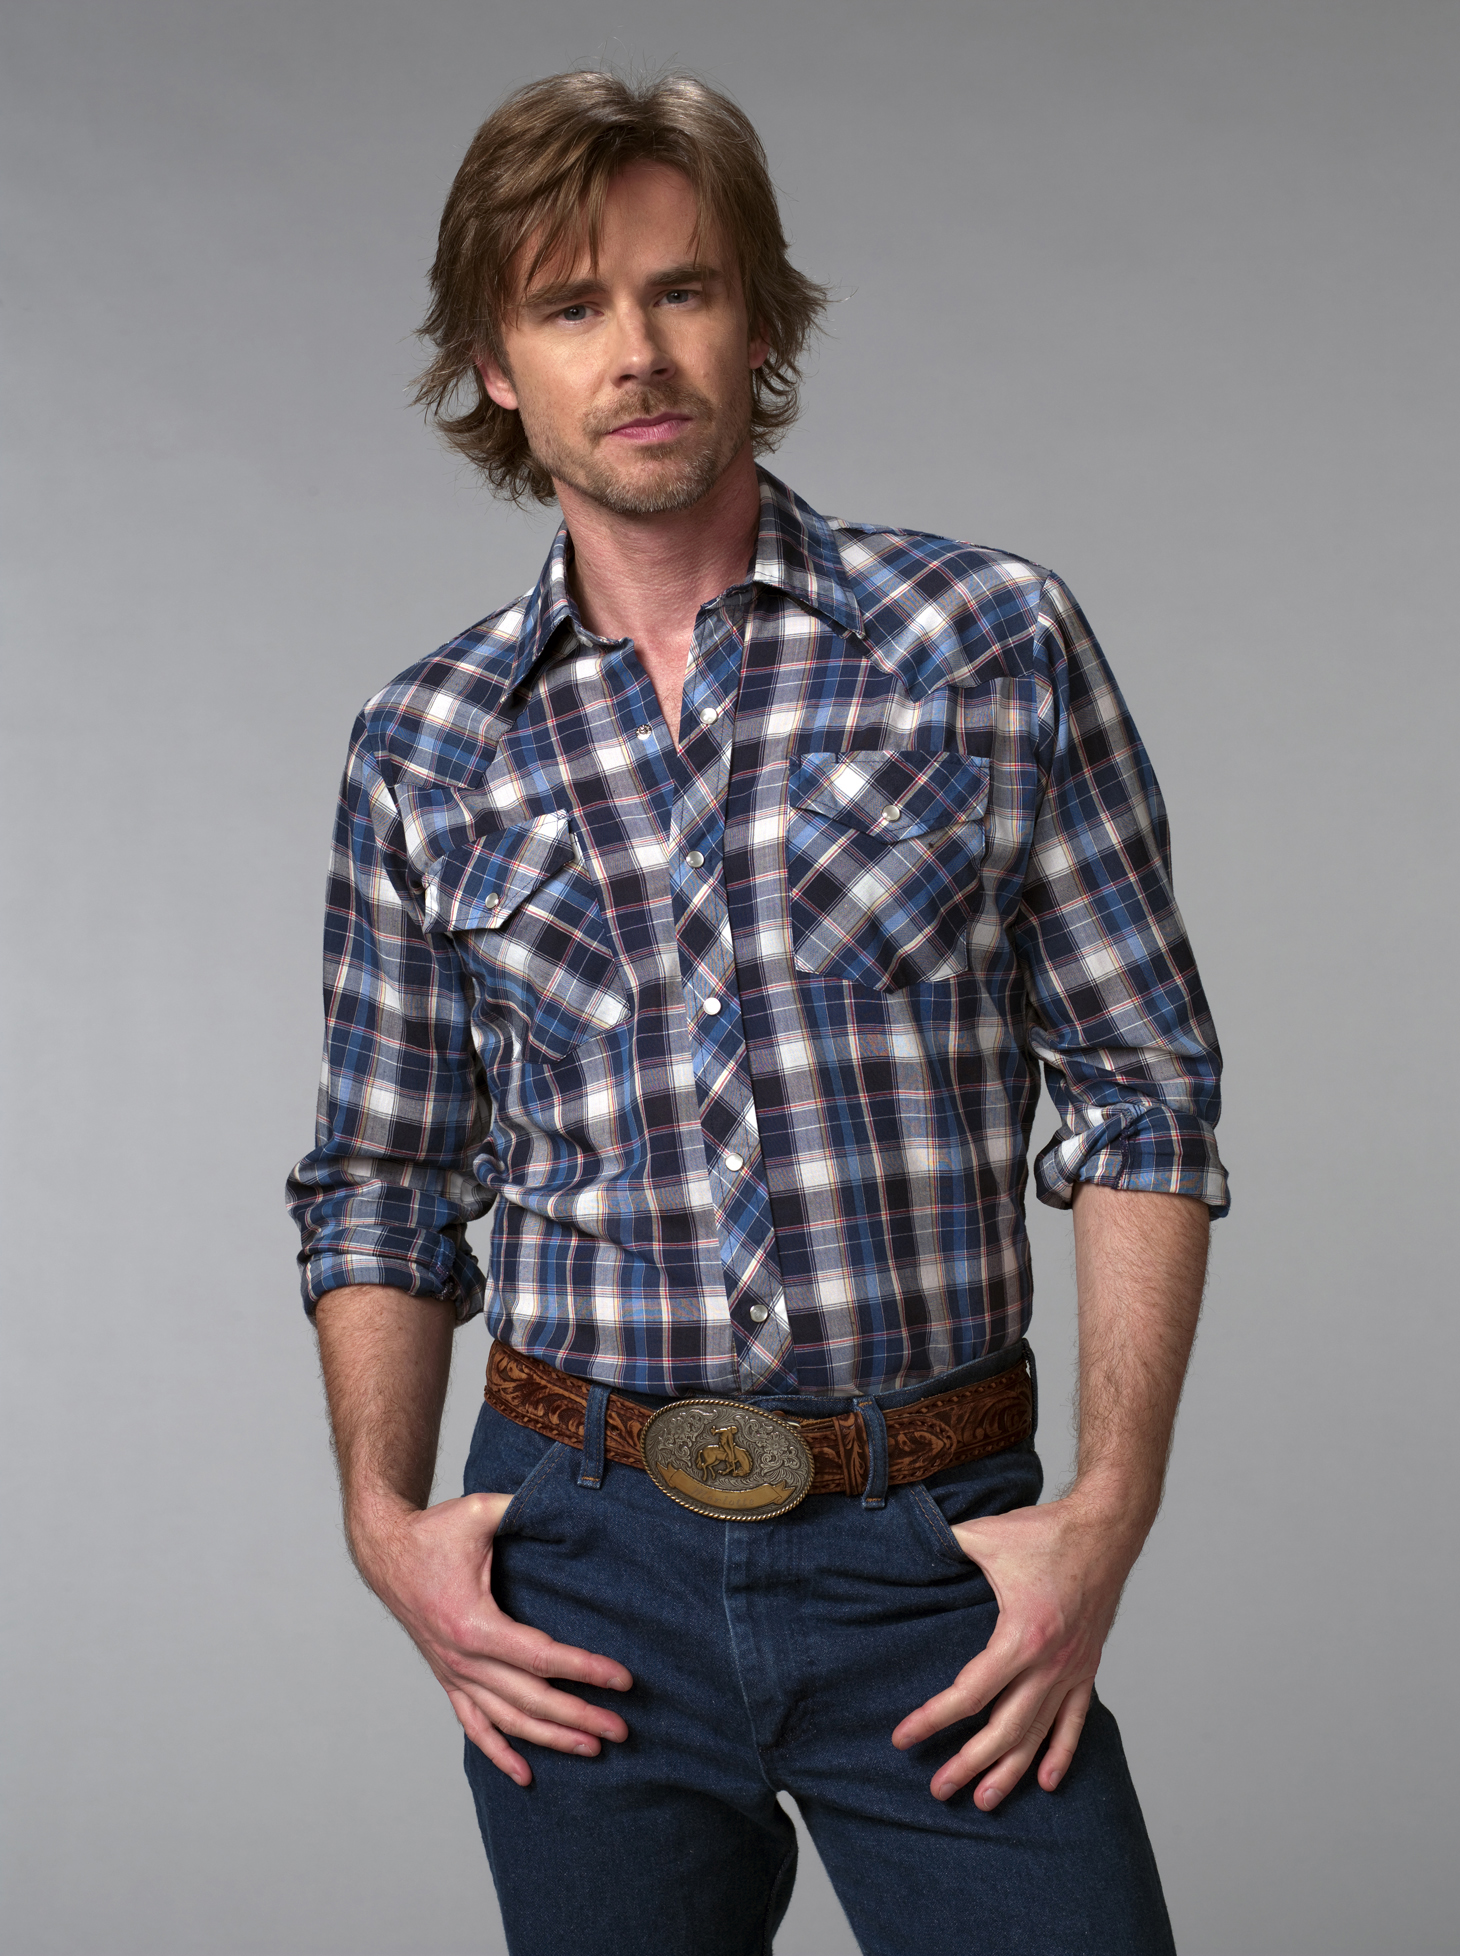 Sam Merlotte/Season 1 | True Blood Wiki | Fandom powered by Wikia